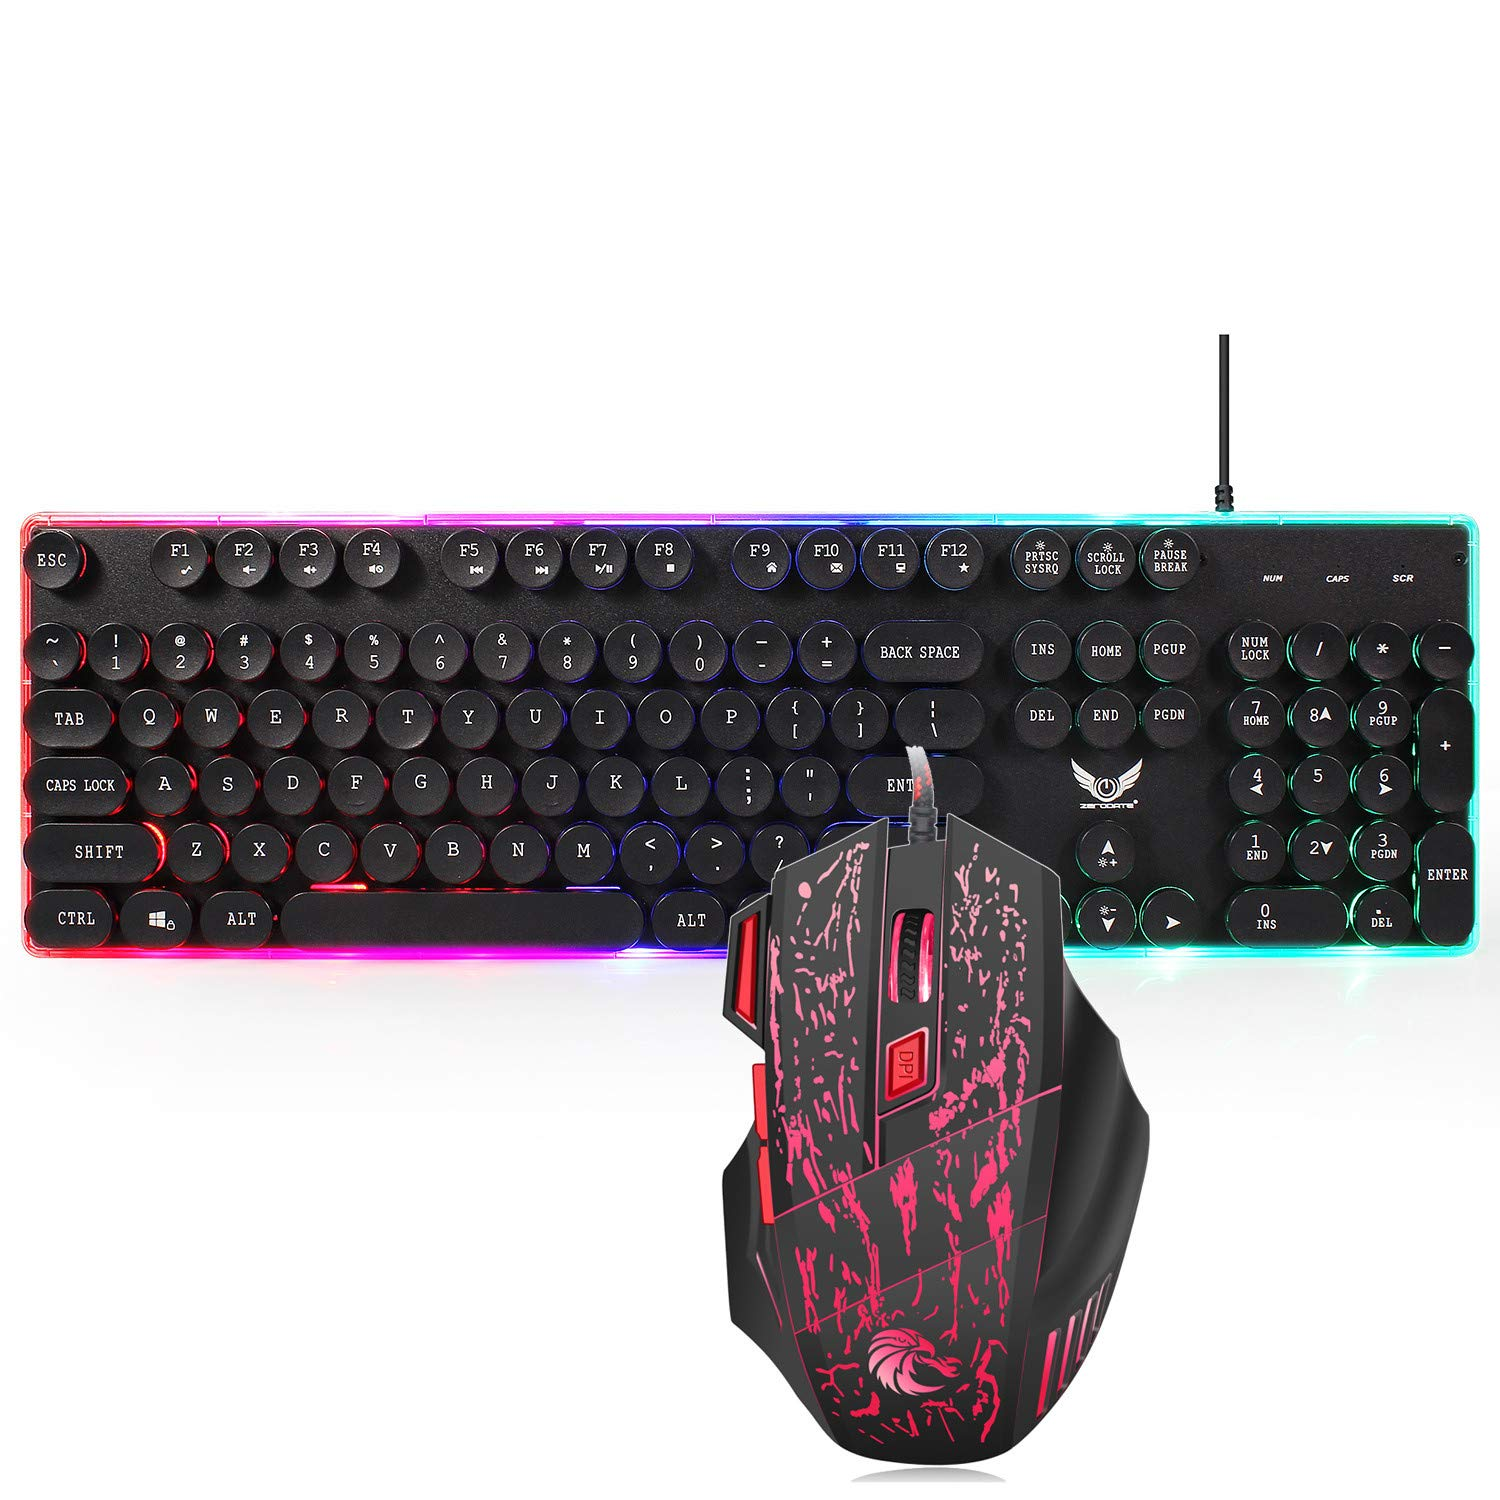 Game Keyboard and Mouse,Sunsee ZERODATE J40 Wired Keyboard Mouse 104 Keys Ergonomic for Typing Games Compatible by SUNSEE ELECTRONICS (Image #3)